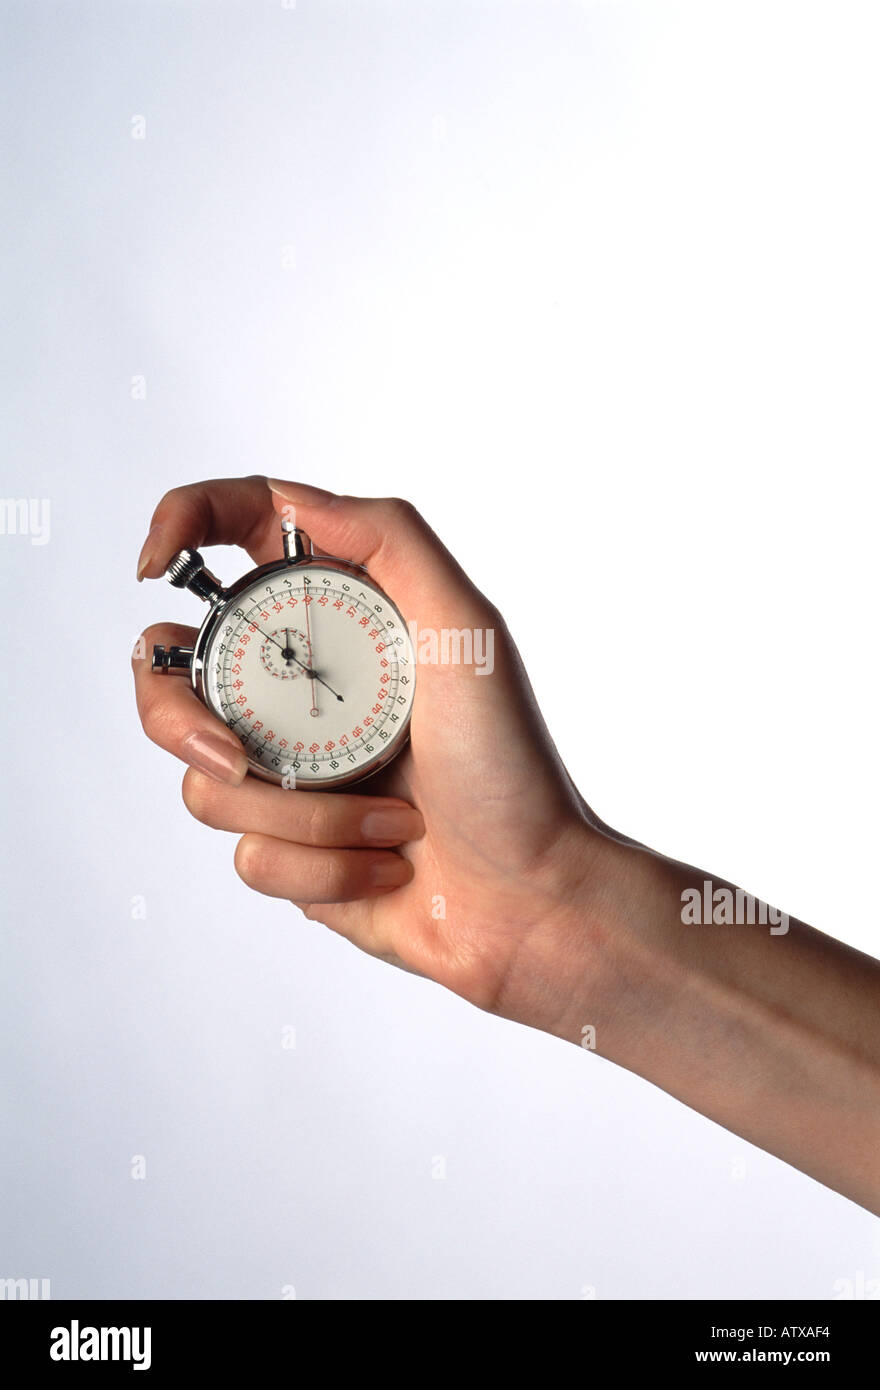 female hand holding a stopwatch - Stock Image